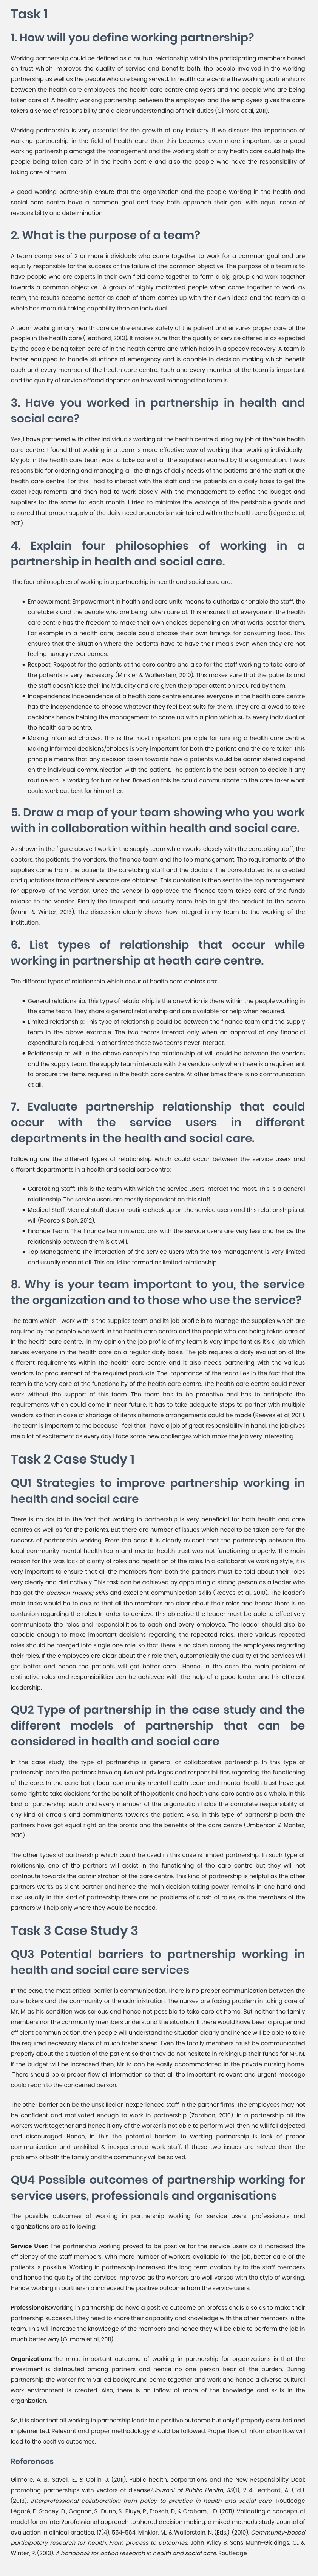 Task 1 1. How will you define working partnership? Working partnership could be defined as a mutual relationship within the participating members based on trust which improves the quality of service and benefits both, the people involved in the working partnership as well as the people who are being served. In health care centre the working partnership is between the health care employees, the health care centre employers and the people who are being taken care of. A healthy working partnership between the employers and the employees gives the care takers a sense of responsibility and a clear understanding of their duties (Gilmore et al, 2011). Working partnership is very essential for the growth of any industry. If we discuss the importance of working partnership in the field of health care then this becomes even more important as a good working partnership amongst the management and the working staff of any health care could help the people being taken care of in the health centre and also the people who have the responsibility of taking care of them. A good working partnership ensure that the organization and the people working in the health and social care centre have a common goal and they both approach their goal with equal sense of responsibility and determination. 2. What is the purpose of a team? A team comprises of 2 or more individuals who come together to work for a common goal and are equally responsible for the success or the failure of the common objective. The purpose of a team is to have people who are experts in their own field come together to form a big group and work together towards a common objective.  A group of highly motivated people when come together to work as team, the results become better as each of them comes up with their own ideas and the team as a whole has more risk taking capability than an individual. A team working in any health care centre ensures safety of the patient and ensures proper care of the people in the health care (Leathard, 2013). It makes sure that the quality of service offered is as expected by the people being taken care of in the health centre and which helps in a speedy recovery. A team is better equipped to handle situations of emergency and is capable in decision making which benefit each and every member of the health care centre. Each and every member of the team is important and the quality of service offered depends on how well managed the team is. 3. Have you worked in partnership in health and social care? Yes, I have partnered with other individuals working at the health centre during my job at the Yale health care centre. I found that working in a team is more effective way of working than working individually.  My job in the health care team was to take care of all the supplies required by the organization.  I was responsible for ordering and managing all the things of daily needs of the patients and the staff at the health care centre. For this I had to interact with the staff and the patients on a daily basis to get the exact requirements and then had to work closely with the management to define the budget and suppliers for the same for each month. I tried to minimize the wastage of the perishable goods and ensured that proper supply of the daily need products is maintained within the health care (Légaré et al, 2011). 4. Explain four philosophies of working in a partnership in health and social care.  The four philosophies of working in a partnership in health and social care are: Empowerment: Empowerment in health and care units means to authorize or enable the staff, the caretakers and the people who are being taken care of. This ensures that everyone in the health care centre has the freedom to make their own choices depending on what works best for them. For example in a health care, people could choose their own timings for consuming food. This ensures that the situation where the patients have to have their meals even when they are not feeling hungry never comes. Respect: Respect for the patients at the care centre and also for the staff working to take care of the patients is very necessary (Minkler & Wallerstein, 2010). This makes sure that the patients and the staff doesn't lose their individuality and are given the proper attention required by them. Independence: Independence at a health care centre ensures everyone in the health care centre has the independence to choose whatever they feel best suits for them. They are allowed to take decisions hence helping the management to come up with a plan which suits every individual at the health care centre. Making informed choices: This is the most important principle for running a health care centre. Making informed decisions/choices is very important for both the patient and the care taker. This principle means that any decision taken towards how a patients would be administered depend on the individual communication with the patient. The patient is the best person to decide if any routine etc. is working for him or her. Based on this he could communicate to the care taker what could work out best for him or her. 5. Draw a map of your team showing who you work with in collaboration within health and social care. As shown in the figure above, I work in the supply team which works closely with the caretaking staff, the doctors, the patients, the vendors, the finance team and the top management. The requirements of the supplies come from the patients, the caretaking staff and the doctors. The consolidated list is created and quotations from different vendors are obtained. This quotation is then sent to the top management for approval of the vendor. Once the vendor is approved the finance team takes care of the funds release to the vendor. Finally the transport and security team help to get the product to the centre (Munn & Winter, 2013). The discussion clearly shows how integral is my team to the working of the institution. 6. List types of relationship that occur while working in partnership at heath care centre. The different types of relationship which occur at health care centres are: General relationship: This type of relationship is the one which is there within the people working in the same team. They share a general relationship and are available for help when required. Limited relationship: This type of relationship could be between the finance team and the supply team in the above example. The two teams interact only when an approval of any financial expenditure is required. In other times these two teams never interact. Relationship at will: In the above example the relationship at will could be between the vendors and the supply team. The supply team interacts with the vendors only when there is a requirement to procure the items required in the health care centre. At other times there is no communication at all. 7. Evaluate partnership relationship that could occur with the service users in different departments in the health and social care. Following are the different types of relationship which could occur between the service users and different departments in a health and social care centre: Caretaking Staff: This is the team with which the service users interact the most. This is a general relationship. The service users are mostly dependent on this staff. Medical Staff: Medical staff does a routine check up on the service users and this relationship is at will (Pearce & Doh, 2012). Finance Team: The finance team interactions with the service users are very less and hence the relationship between them is at will. Top Management: The interaction of the service users with the top management is very limited and usually none at all. This could be termed as limited relationship. 8. Why is your team important to you, the service the organization and to those who use the service? The team which I work with is the supplies team and its job profile is to manage the supplies which are required by the people who work in the health care centre and the people who are being taken care of in the health care centre.  In my opinion the job profile of my team is very important as it's a job which serves everyone in the health care on a regular daily basis. The job requires a daily evaluation of the different requirements within the health care centre and it also needs partnering with the various vendors for procurement of the required products. The importance of the team lies in the fact that the team is the very core of the functionality of the health care centre. The health care centre could never work without the support of this team. The team has to be proactive and has to anticipate the requirements which could come in near future. It has to take adequate steps to partner with multiple vendors so that in case of shortage of items alternate arrangements could be made (Reeves et al, 2011). The team is important to me because I feel that I have a job of great responsibility in hand. The job gives me a lot of excitement as every day I face some new challenges which make the job very interesting. Task 2 Case Study 1 QU1 Strategies to improve partnership working in health and social care There is no doubt in the fact that working in partnership is very beneficial for both health and care centres as well as for the patients. But there are number of issues which need to be taken care for the success of partnership working. From the case it is clearly evident that the partnership between the local community mental health team and mental health trust was not functioning properly. The main reason for this was lack of clarity of roles and repetition of the roles. In a collaborative working style, it is very important to ensure that all the members from both the partners must be told about their roles very clearly and distinctively. This task can be achieved by appointing a strong person as a leader who has got the decision making skills and excellent communication skills (Reeves et al, 2010). The leader's main tasks would be to ensure that all the members are clear about their roles and hence there is no confusion regarding the roles. In order to achieve this objective the leader must be able to effectively communicate the roles and responsibilities to each and every employee. The leader should also be capable enough to make important decisions regarding the repeated roles. There various repeated roles should be merged into single one role, so that there is no clash among the employees regarding their roles. If the employees are clear about their role then, automatically the quality of the services will get better and hence the patients will get better care.  Hence, in the case the main problem of distinctive roles and responsibilities can be achieved with the help of a good leader and his efficient leadership. QU2 Type of partnership in the case study and the different models of partnership that can be considered in health and social care In the case study, the type of partnership is general or collaborative partnership. In this type of partnership both the partners have equivalent privileges and responsibilities regarding the functioning of the care. In the case both, local community mental health team and mental health trust have got same right to take decisions for the benefit of the patients and health and care centre as a whole. In this kind of partnership, each and every member of the organization holds the complete responsibility of any kind of arrears and commitments towards the patient. Also, in this type of partnership both the partners have got equal right on the profits and the benefits of the care centre (Umberson & Montez, 2010). The other types of partnership which could be used in this case is limited partnership. In such type of relationship, one of the partners will assist in the functioning of the care centre but they will not contribute towards the administration of the care centre. This kind of partnership is helpful as the other partners works as silent partner and hence the main decision taking power remains in one hand and also usually in this kind of partnership there are no problems of clash of roles, as the members of the partners will help only where they would be needed. Task 3 Case Study 3 QU3 Potential barriers to partnership working in health and social care services In the case, the most critical barrier is communication. There is no proper communication between the care takers and the community or the administration. The nurses are facing problem in taking care of Mr. M as his condition was serious and hence not possible to take care at home. But neither the family members nor the community members understand the situation. If there would have been a proper and efficient communication, then people will understand the situation clearly and hence will be able to take the required necessary steps at much faster speed. Even the family members must be communicated properly about the situation of the patient so that they do not hesitate in raising up their funds for Mr. M. If the budget will be increased then, Mr. M can be easily accommodated in the private nursing home.  There should be a proper flow of information so that all the important, relevant and urgent message could reach to the concerned person. The other barrier can be the unskilled or inexperienced staff in the partner firms. The employees may not be confident and motivated enough to work in partnership (Zambon, 2010). In a partnership all the workers work together and hence if any of the worker is not able to perform well then he will fell dejected and discouraged. Hence, in this the potential barriers to working partnership is lack of proper communication and unskilled & inexperienced work staff. If these two issues are solved then, the problems of both the family and the community will be solved. QU4 Possible outcomes of partnership working for service users, professionals and organisations The possible outcomes of working in partnership working for service users, professionals and organizations are as following: Service User: The partnership working proved to be positive for the service users as it increased the efficiency of the staff members. With more number of workers available for the job, better care of the patients is possible. Working in partnership increased the long term availability to the staff members and hence the quality of the services improved as the workers are well versed with the style of working. Hence, working in partnership increased the positive outcome from the service users. Professionals:Working in partnership do have a positive outcome on professionals also as to make their partnership successful they need to share their capability and knowledge with the other members in the team. This will increase the knowledge of the members and hence they will be able to perform the job in much better way (Gilmore et al, 2011). Organizations:The most important outcome of working in partnership for organizations is that the investment is distributed among partners and hence no one person bear all the burden. During partnership the worker from varied background come together and work and hence a diverse cultural work environment is created. Also, there is an inflow of more of the knowledge and skills in the organization. So, it is clear that all working in partnership leads to a positive outcome but only if properly executed and implemented. Relevant and proper methodology should be followed. Proper flow of information flow will lead to the positive outcomes.       References Gilmore, A. B., Savell, E., & Collin, J. (2011). Public health, corporations and the New Responsibility Deal: promoting partnerships with vectors of disease?Journal of Public Health, 33(1), 2-4 Leathard, A. (Ed.). (2013). Interprofessional collaboration: from policy to practice in health and social care. Routledge Légaré, F., Stacey, D., Gagnon, S., Dunn, S., Pluye, P., Frosch, D, & Graham, I. D. (2011). Validating a conceptual model for an inter?professional approach to shared decision making: a mixed methods study. Journal of evaluation in clinical practice, 17(4), 554-564. Minkler, M., & Wallerstein, N. (Eds.). (2010). Community-based participatory research for health: From process to outcomes. John Wiley & Sons Munn-Giddings, C., & Winter, R. (2013). A handbook for action research in health and social care. Routledge